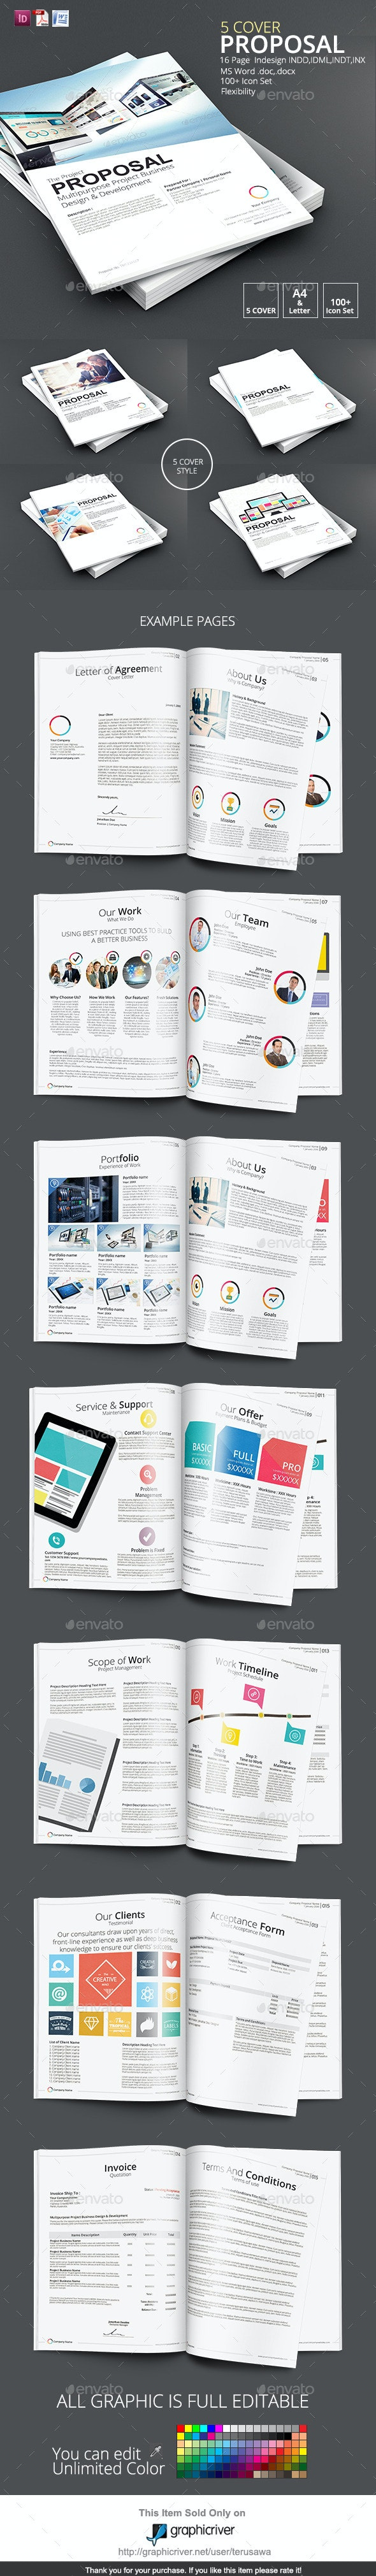 5 Cover Proposal Template - Proposals & Invoices Stationery